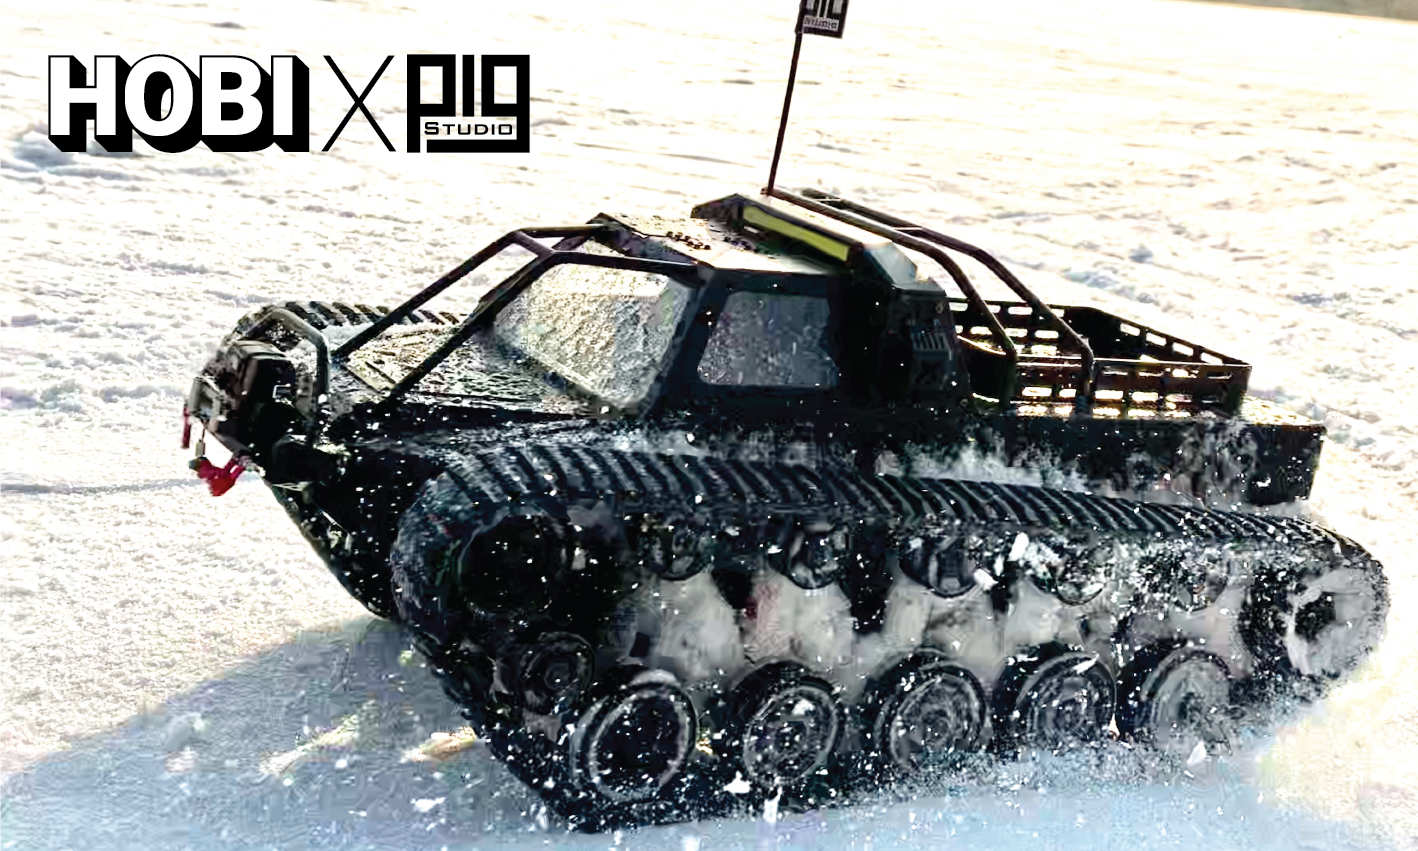 HOBI X PIG Studio Ripsaw Super Tank Scale 1/10 FREE AU delivery